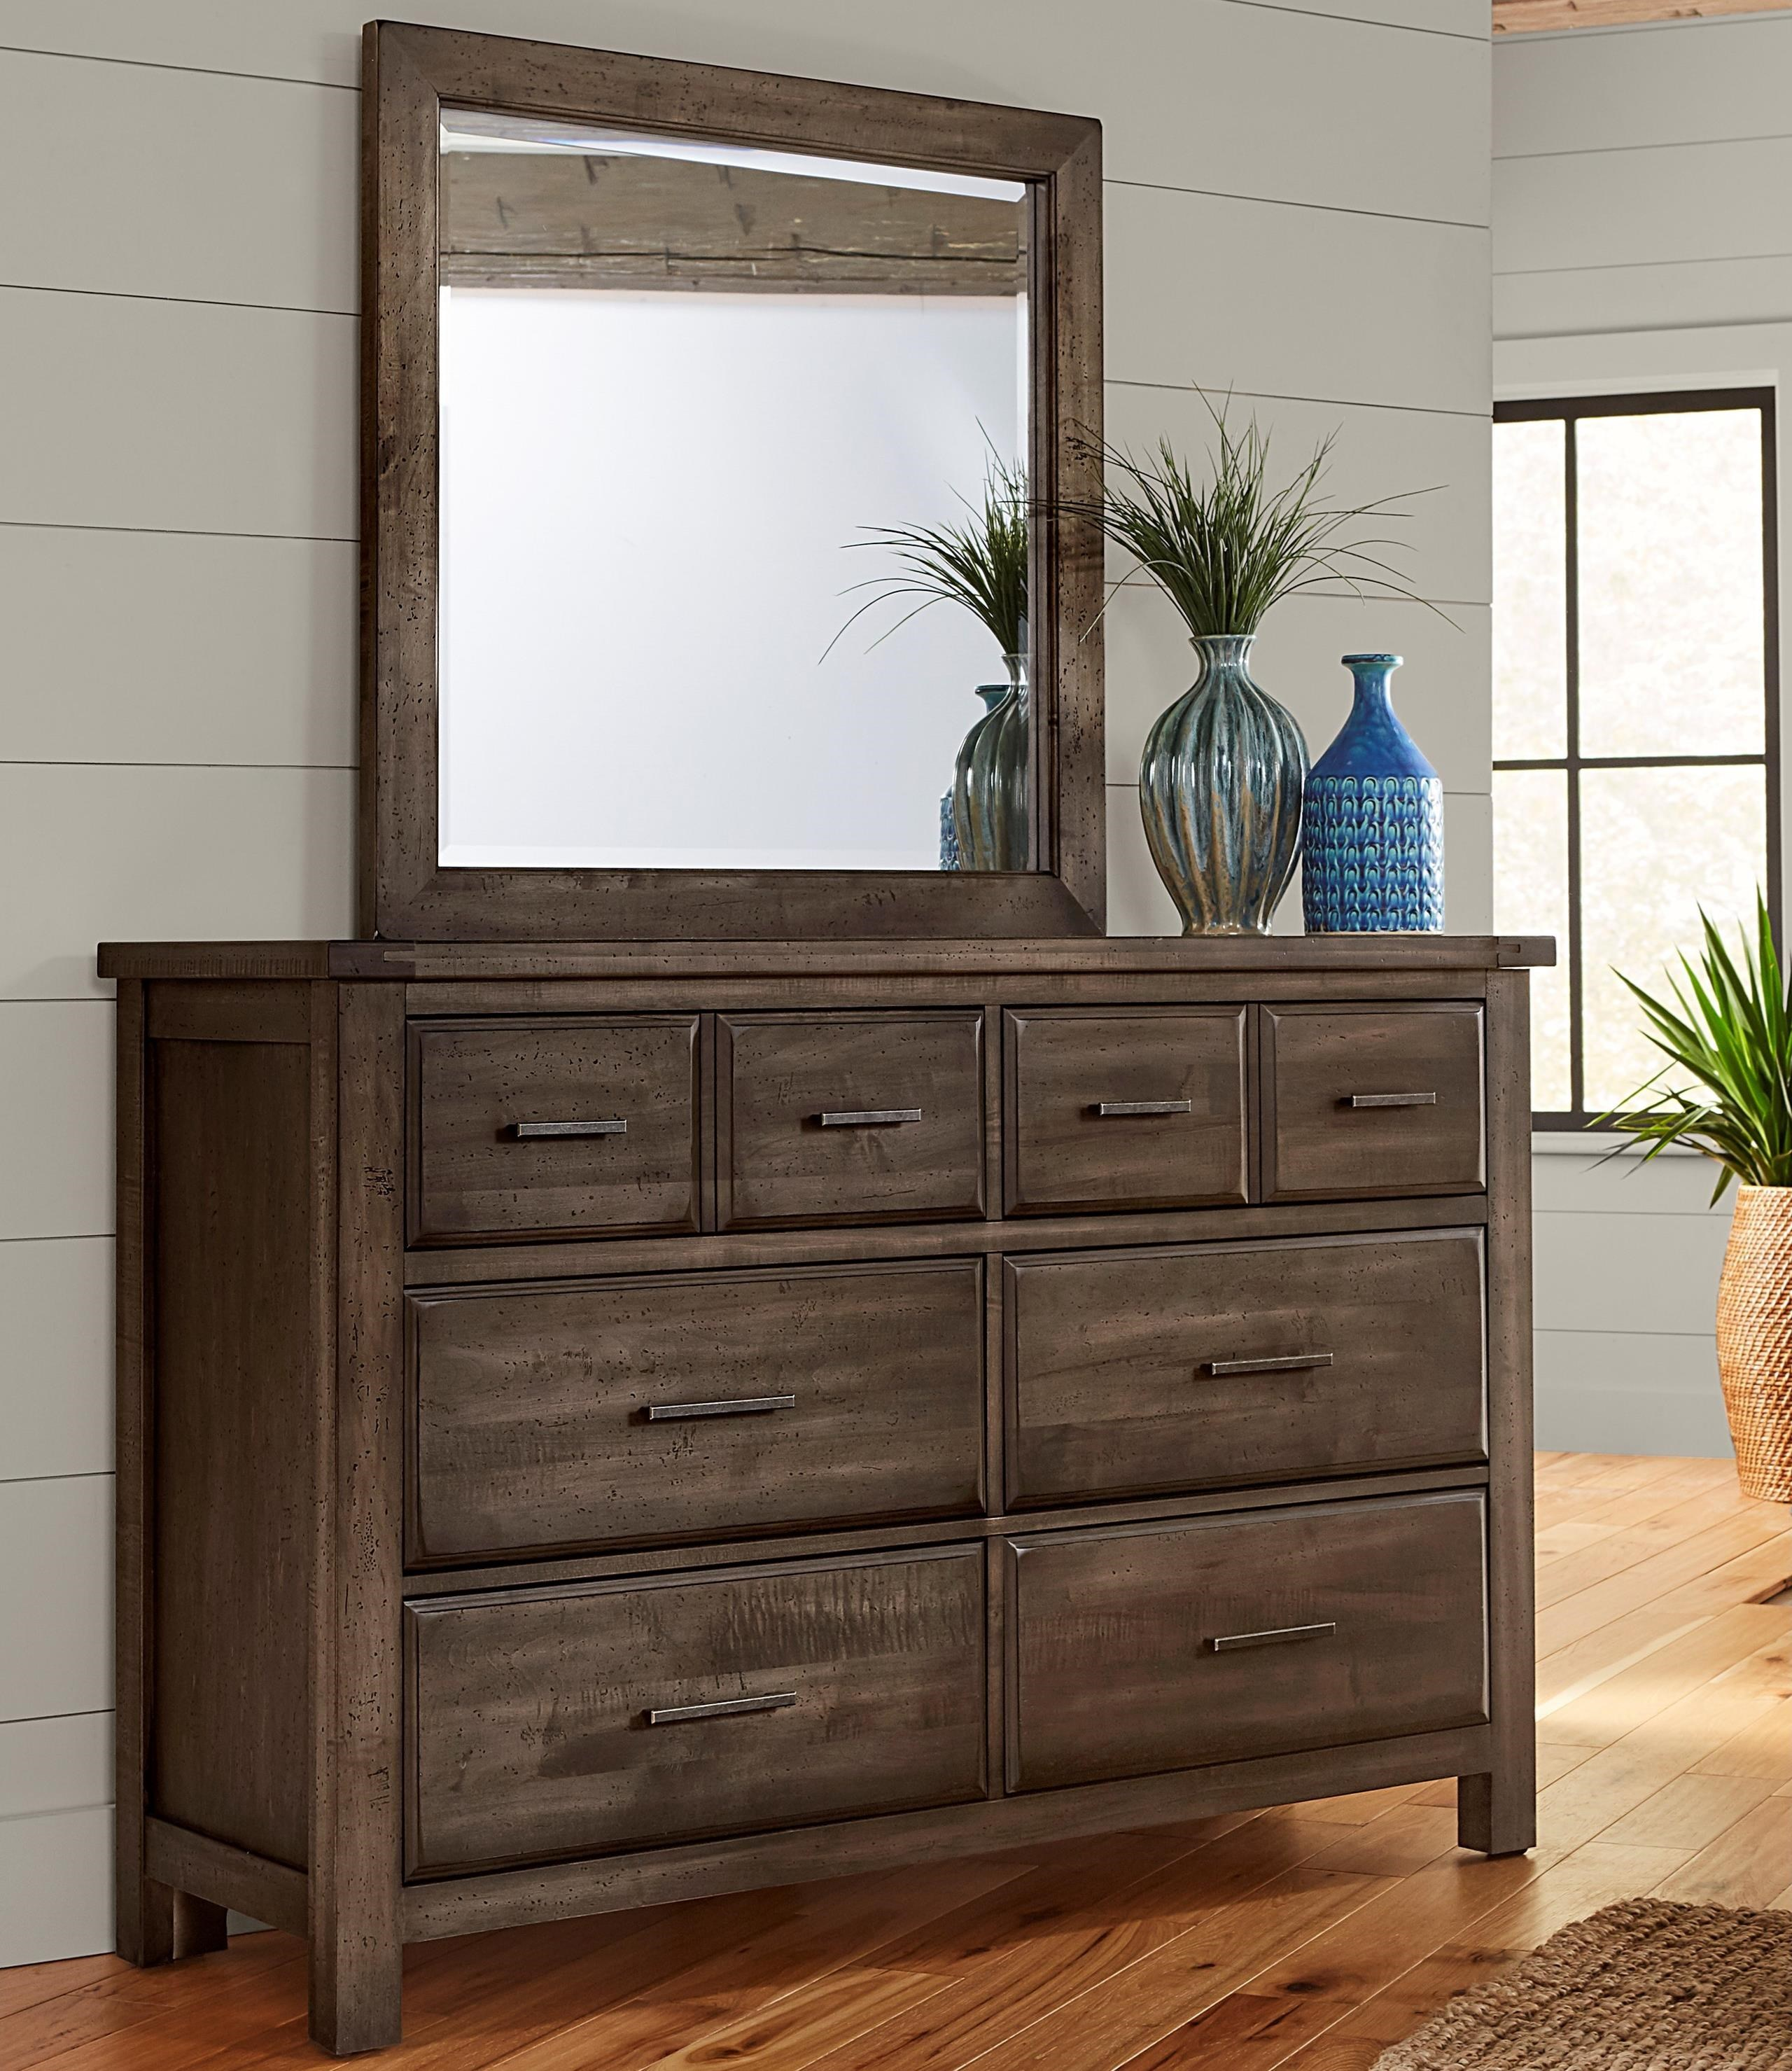 Chestnut Creek Dresser and Mirror Set by Centennial Solids at Rooms and Rest